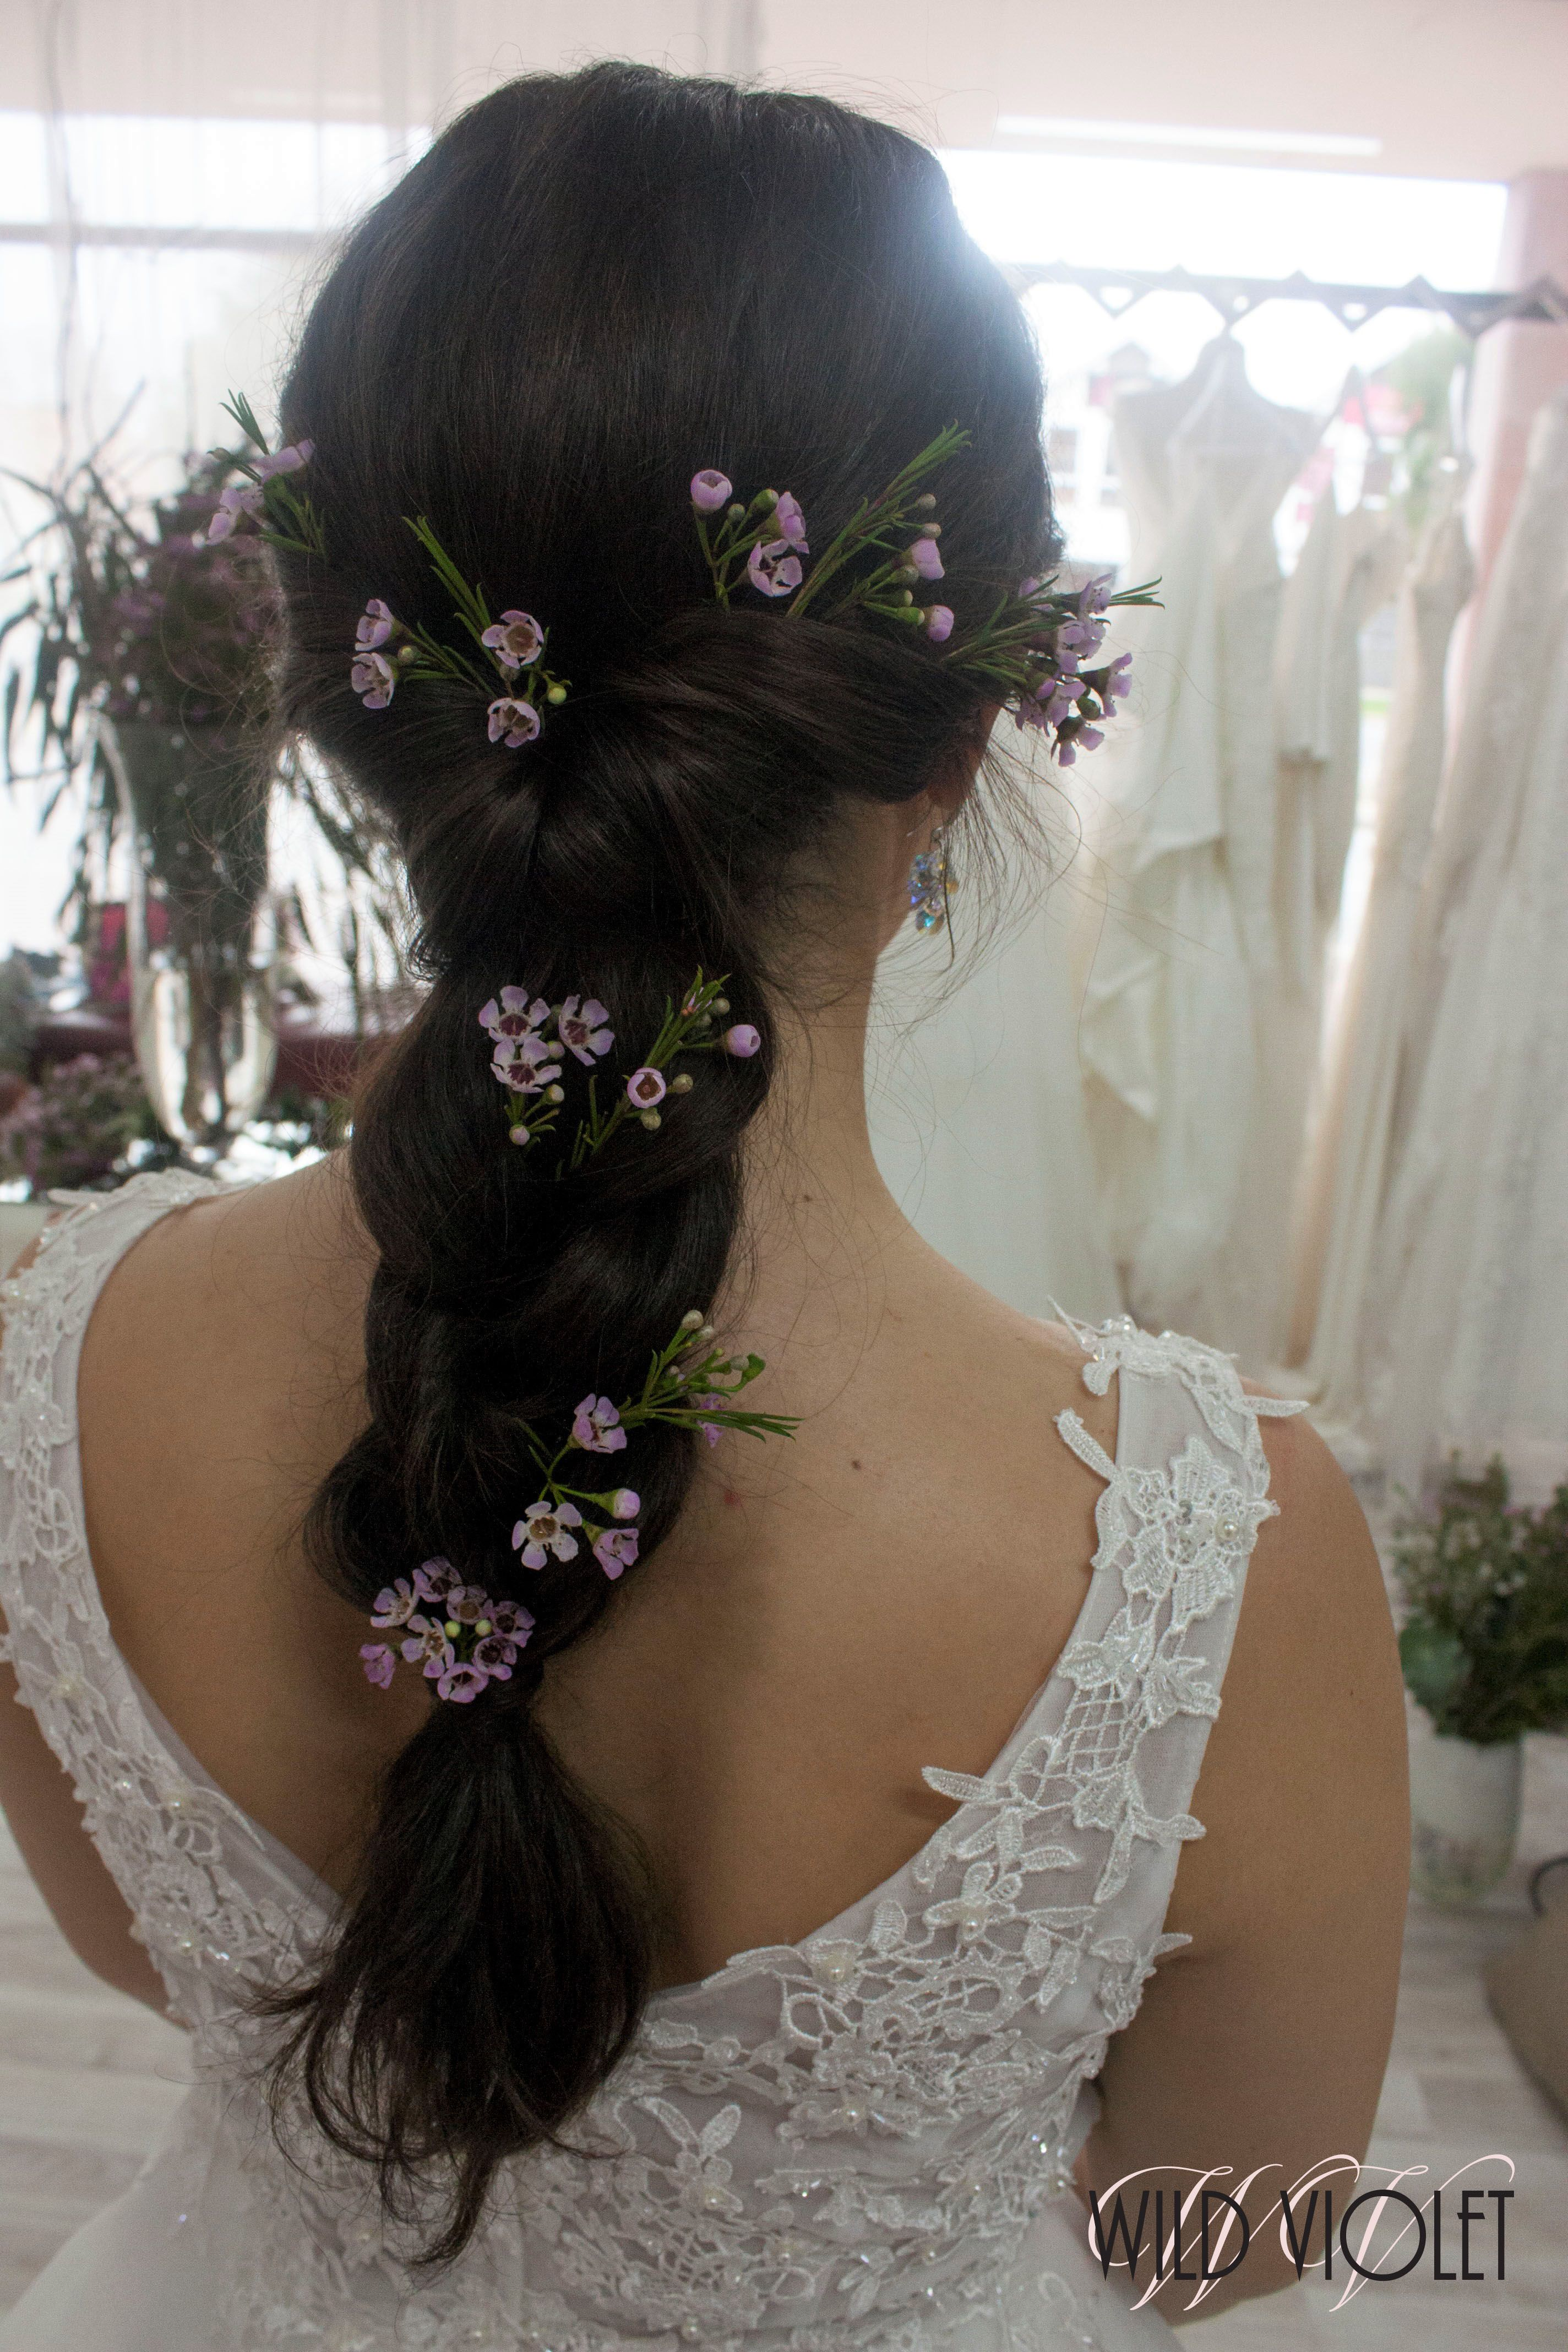 pin by alexandra miller on hairstyles | hair styles, wedding